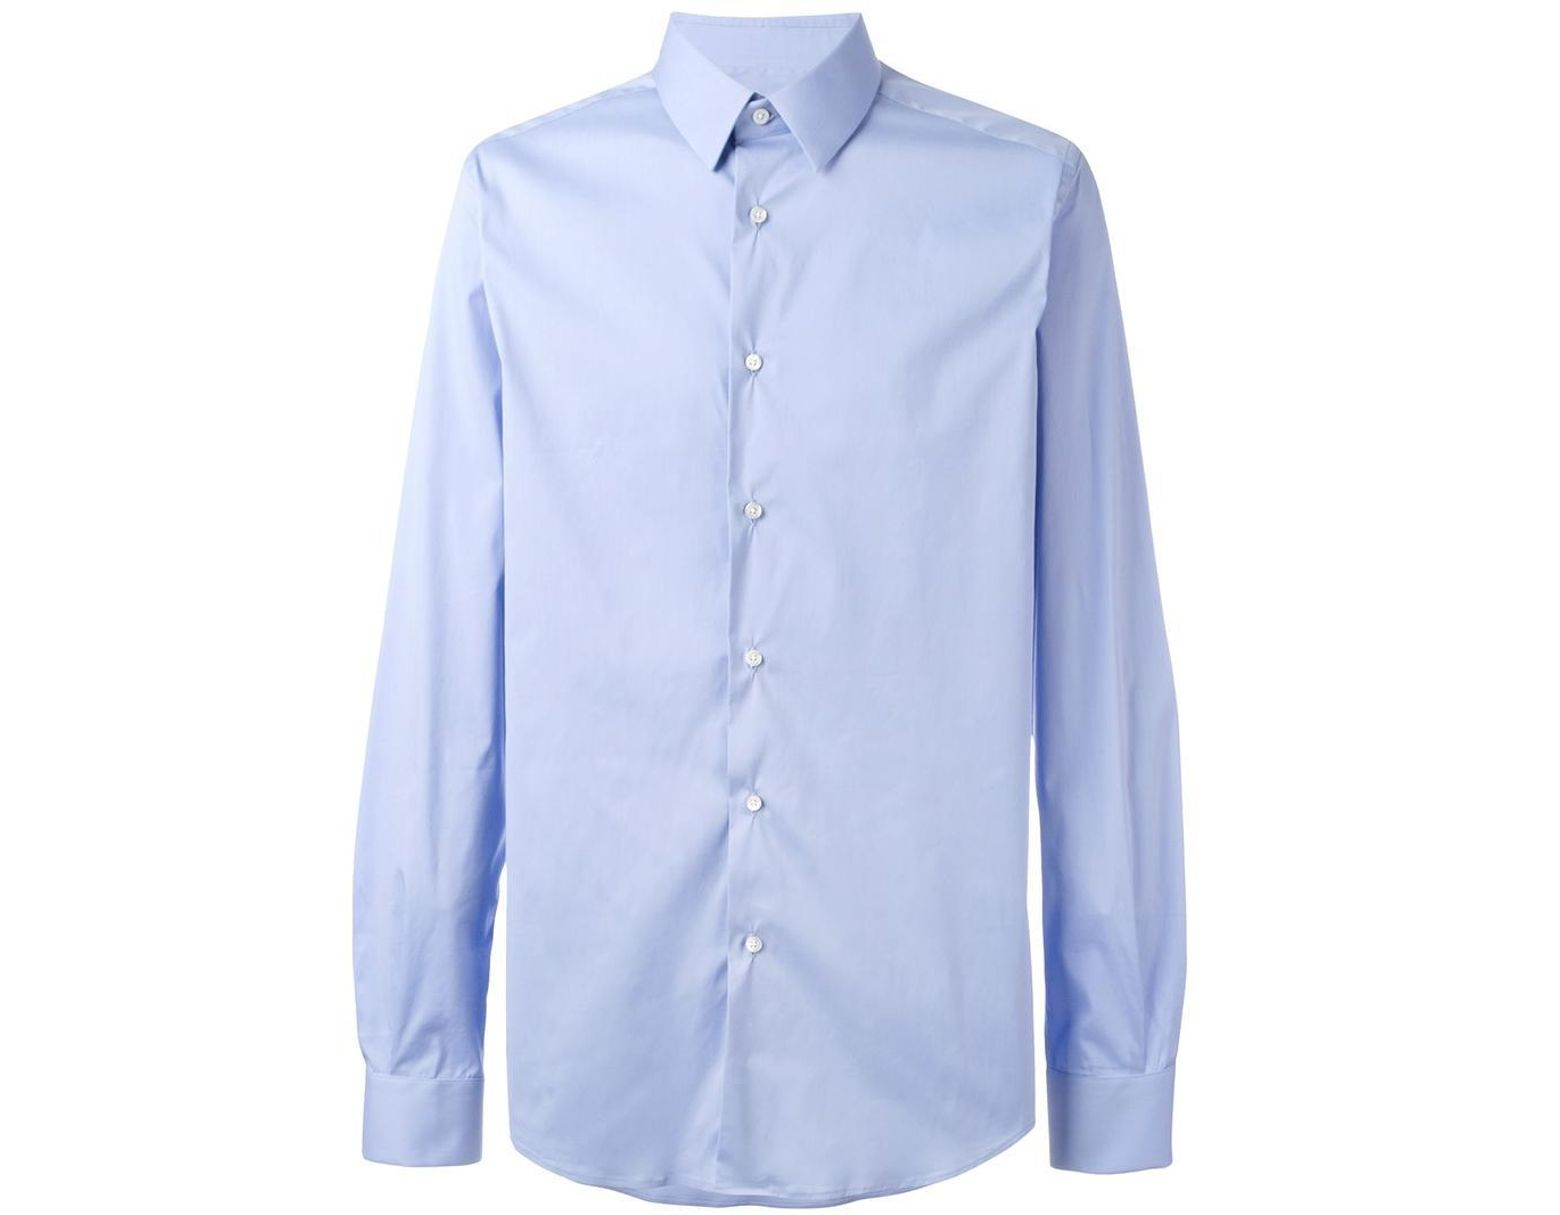 29c7101cd45767 Fashion Clinic Classic Buttoned Shirt in Blue for Men - Lyst